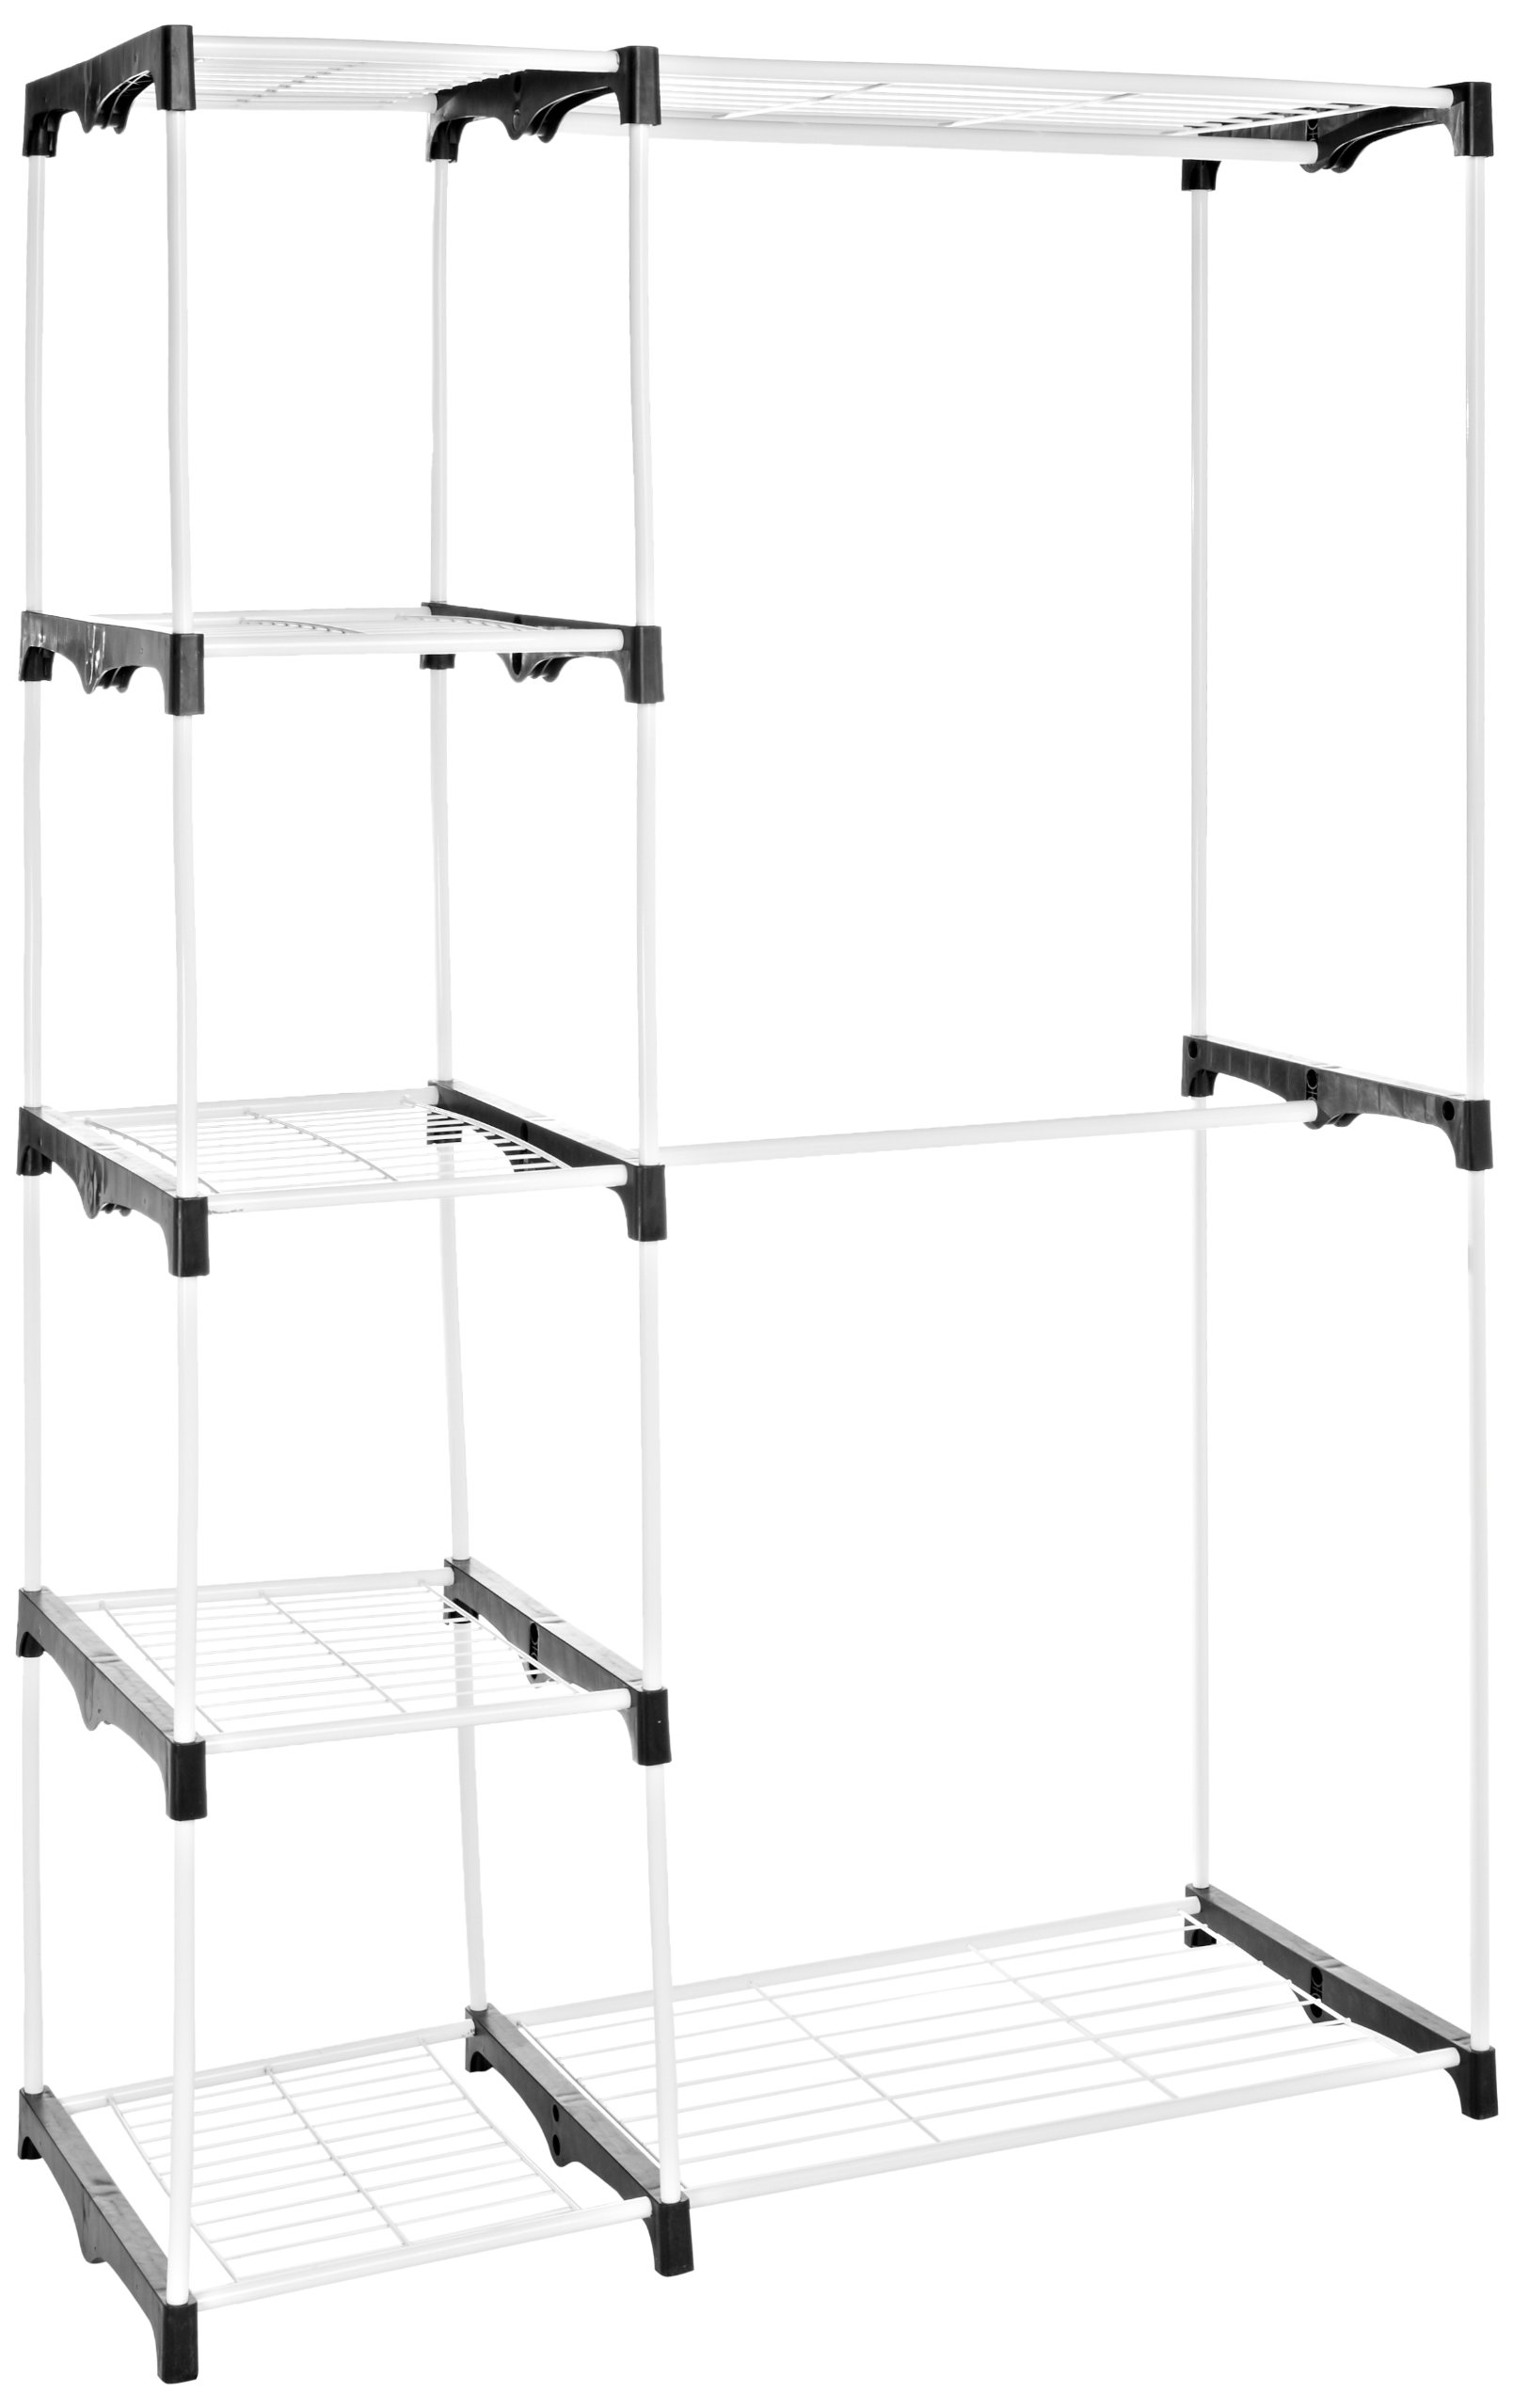 amazonbasics double clothes rail wardrobe white ebay. Black Bedroom Furniture Sets. Home Design Ideas